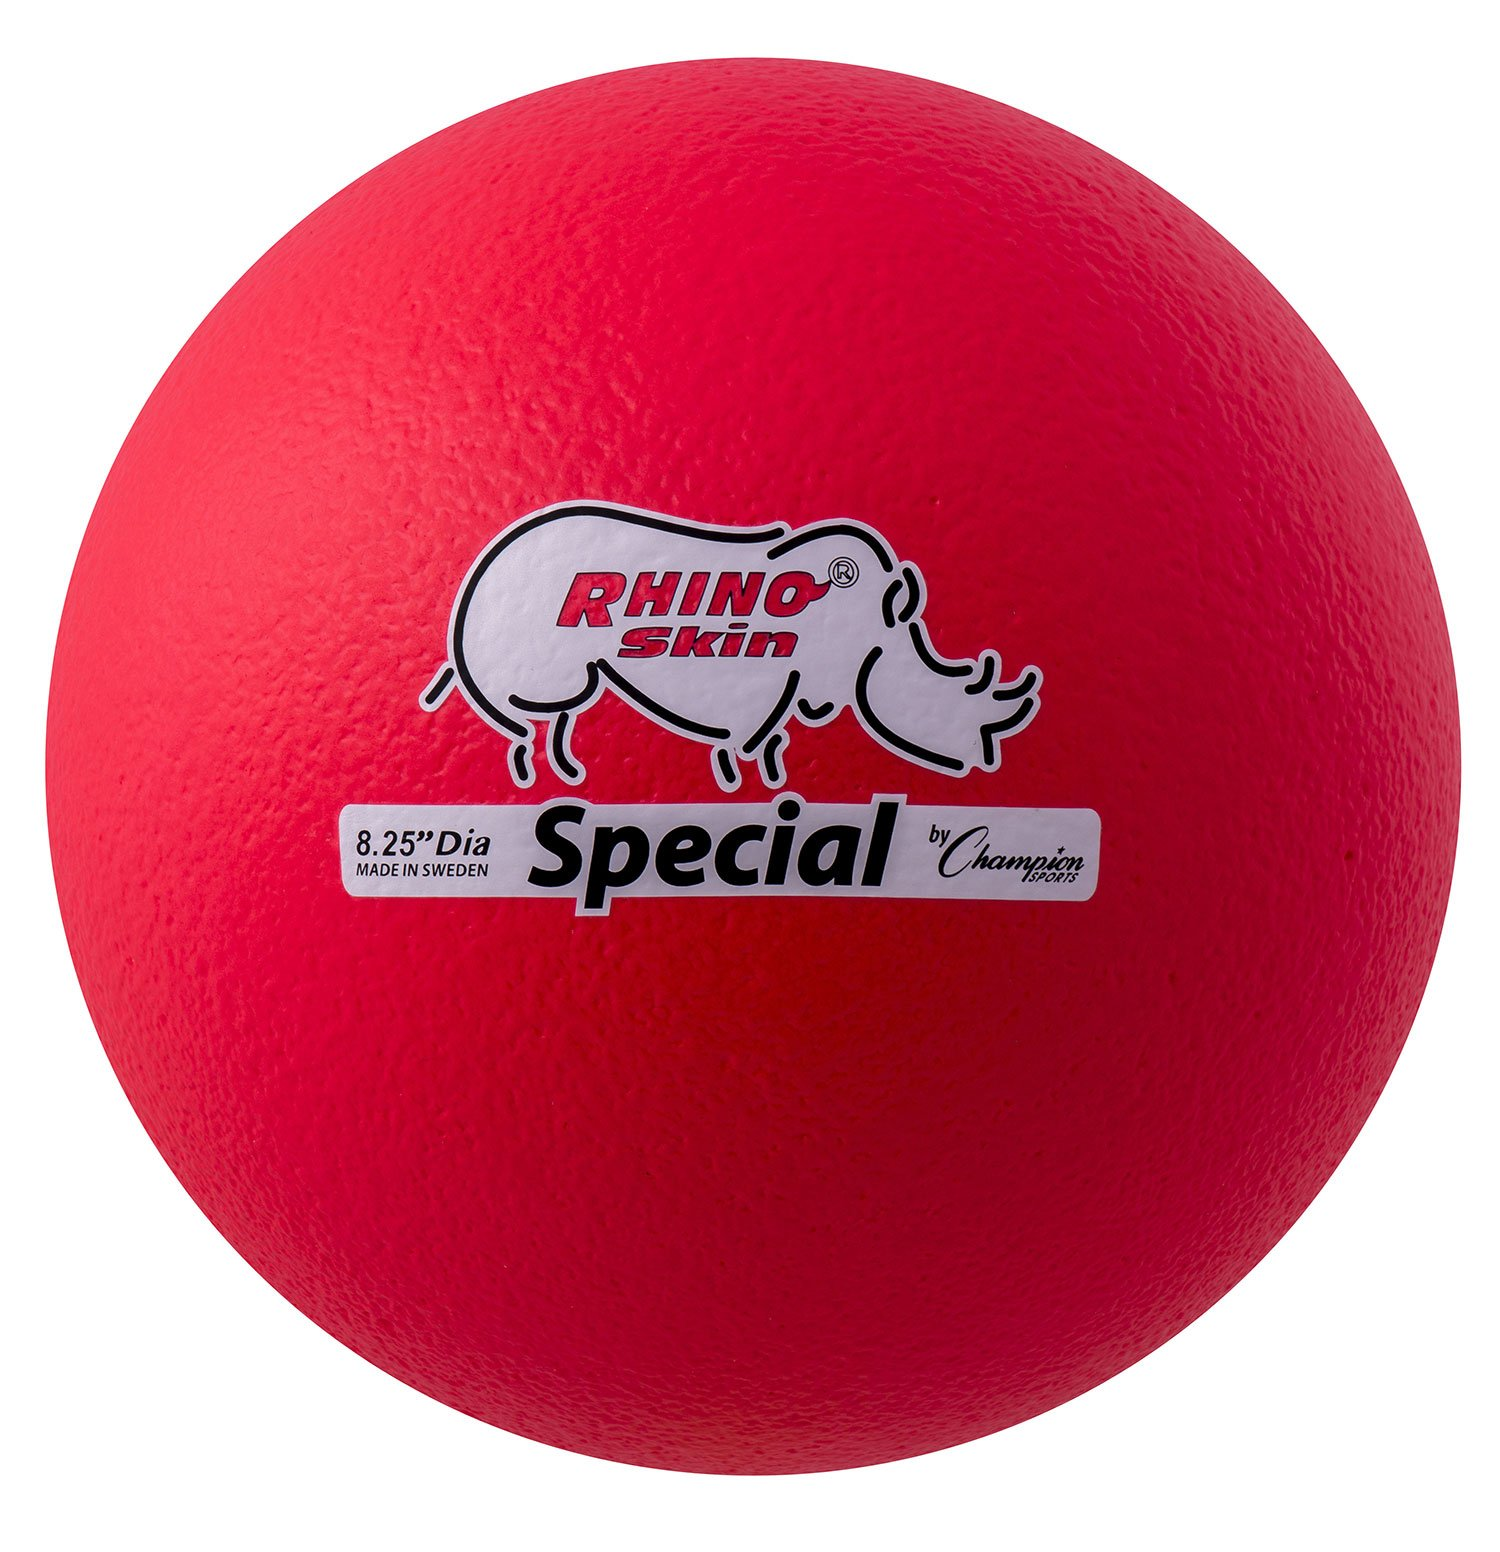 Champion Sports Rhino Skin Special Ball (Neon Red) by Champion Sports (Image #1)